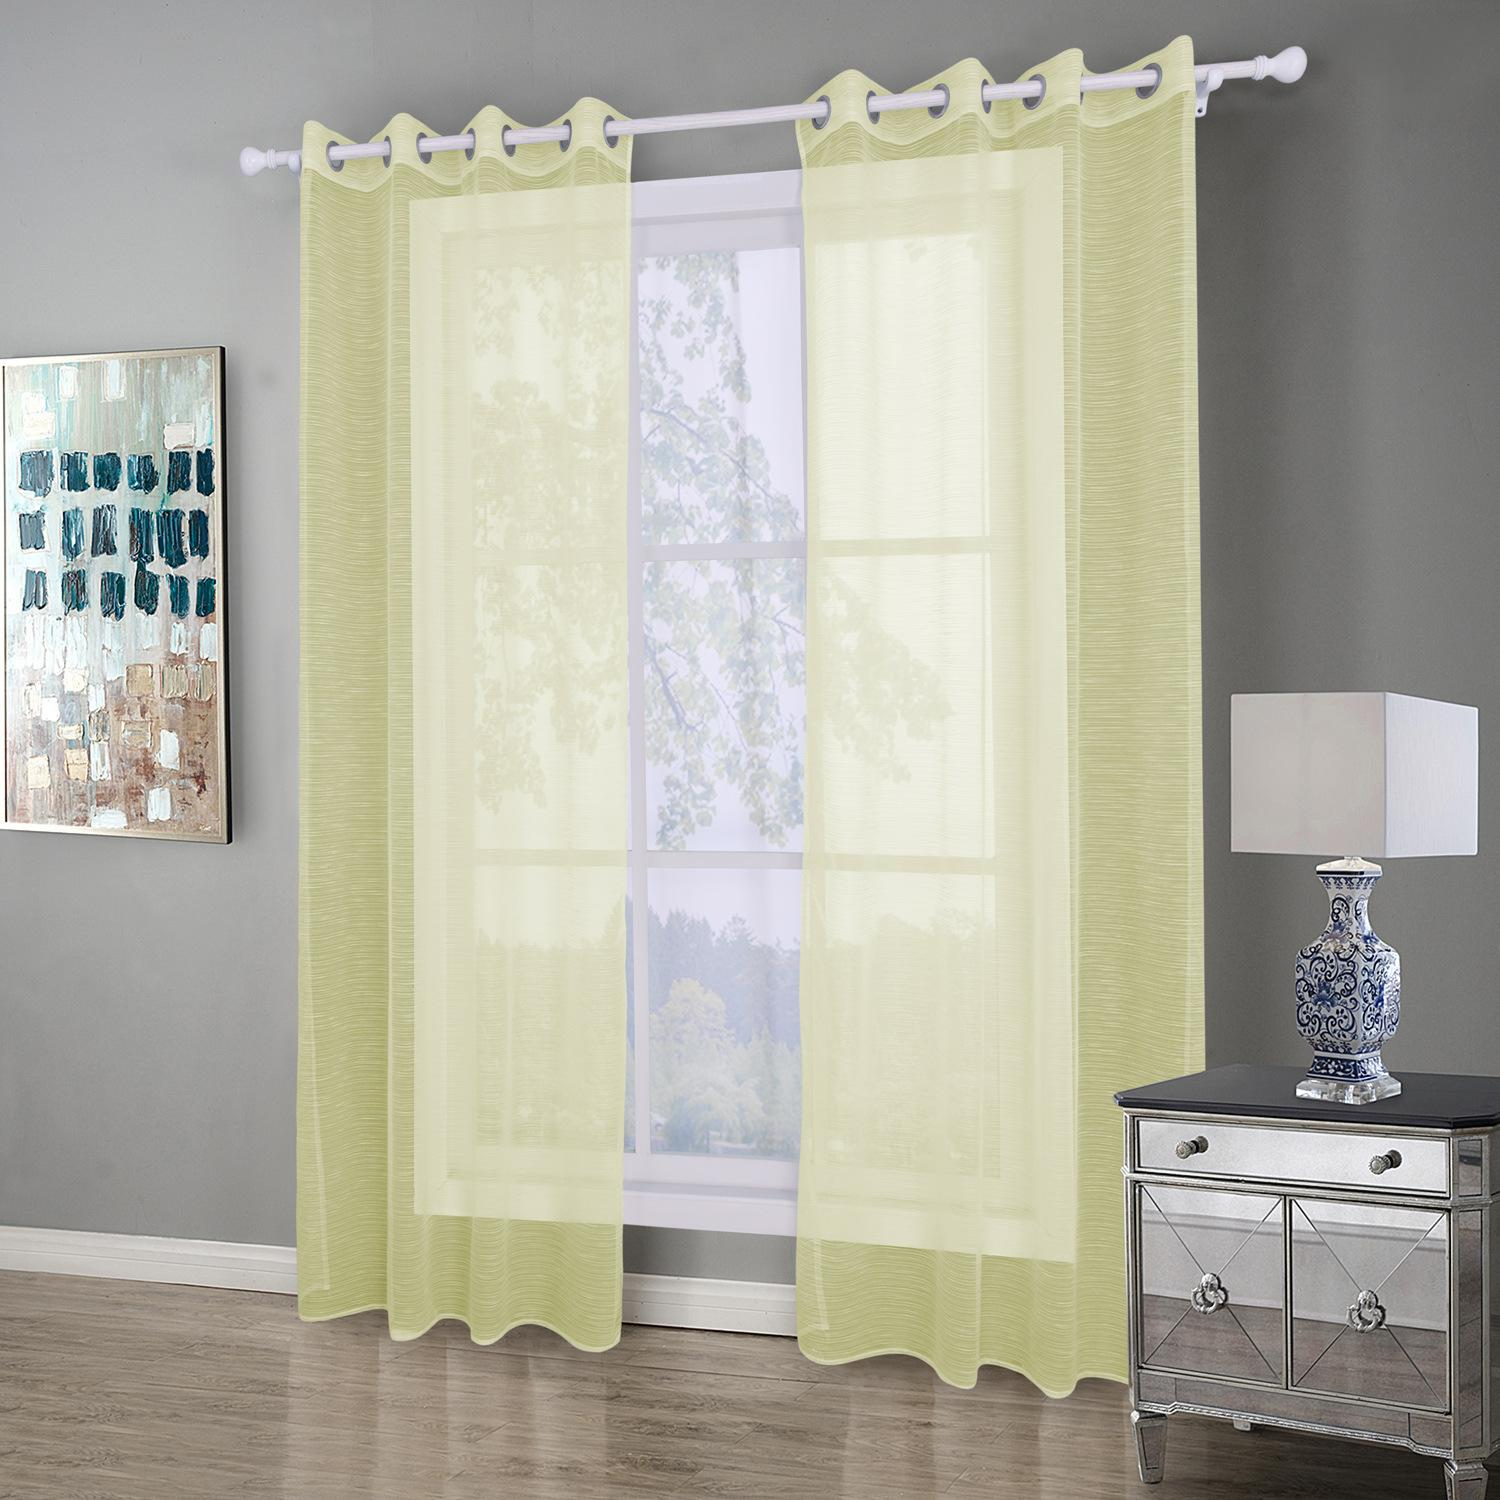 8005 Modern Sheer Curtains For Living Room Bedroom Curtains For ...